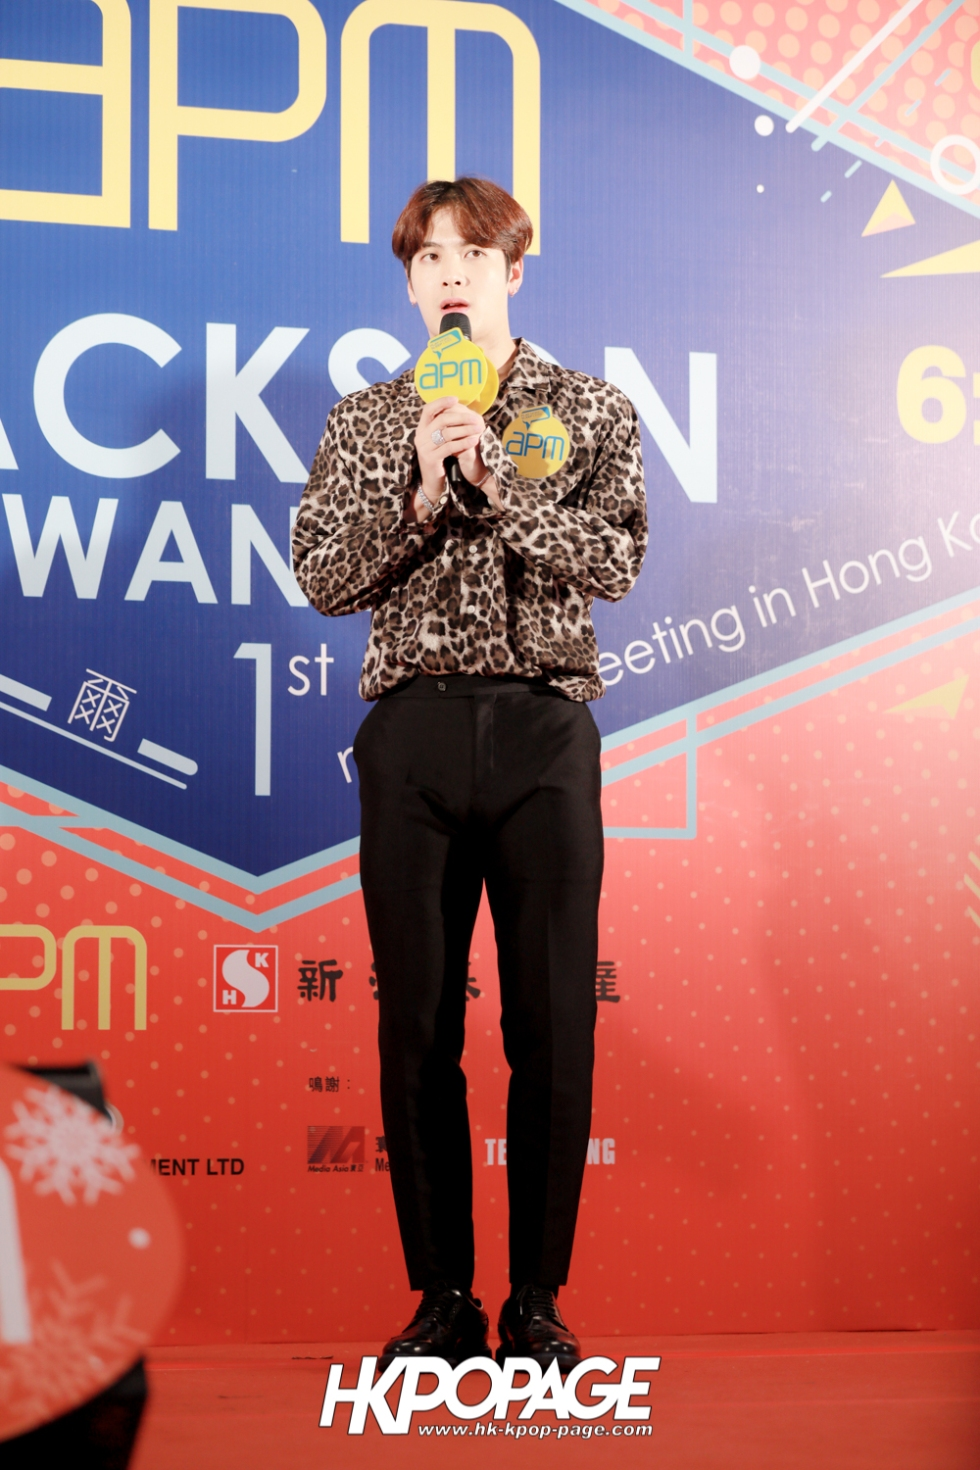 [HK.KPOP.PAGE] 171204_apm x Jackson Wang 1st mini fan meeting in Hong Kong_02